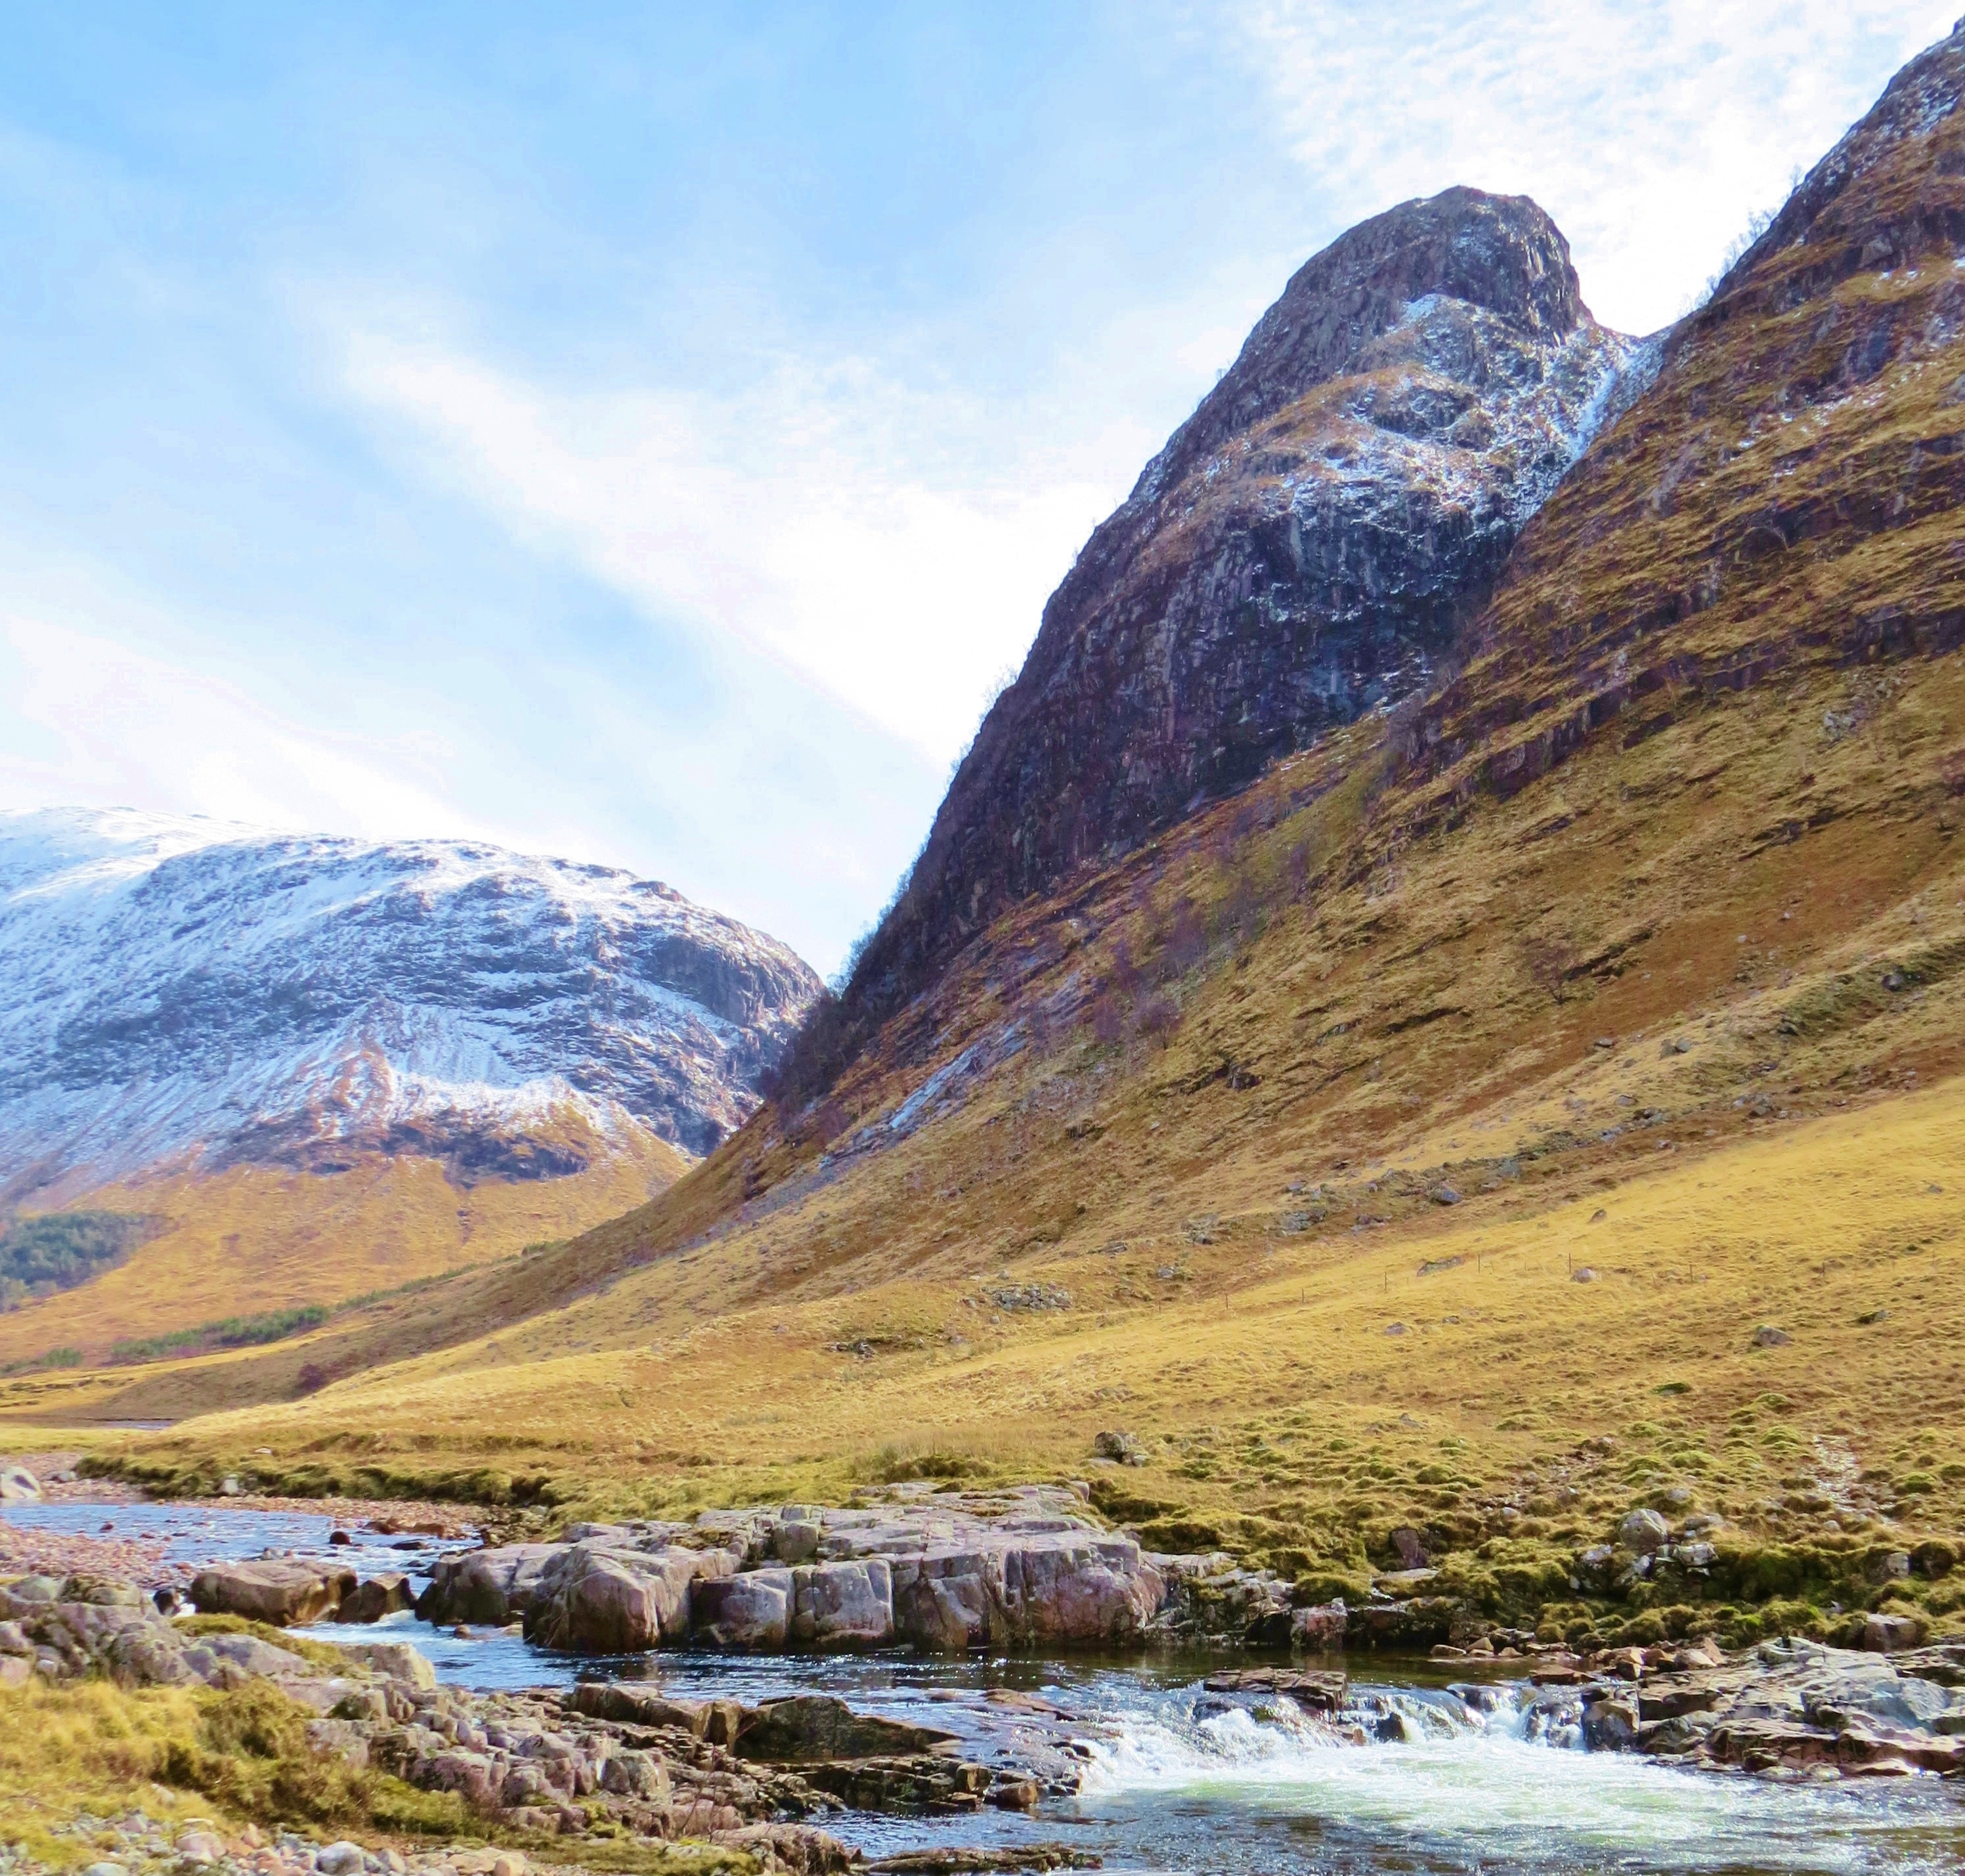 River Etive Fishing River Etive an Mountains in